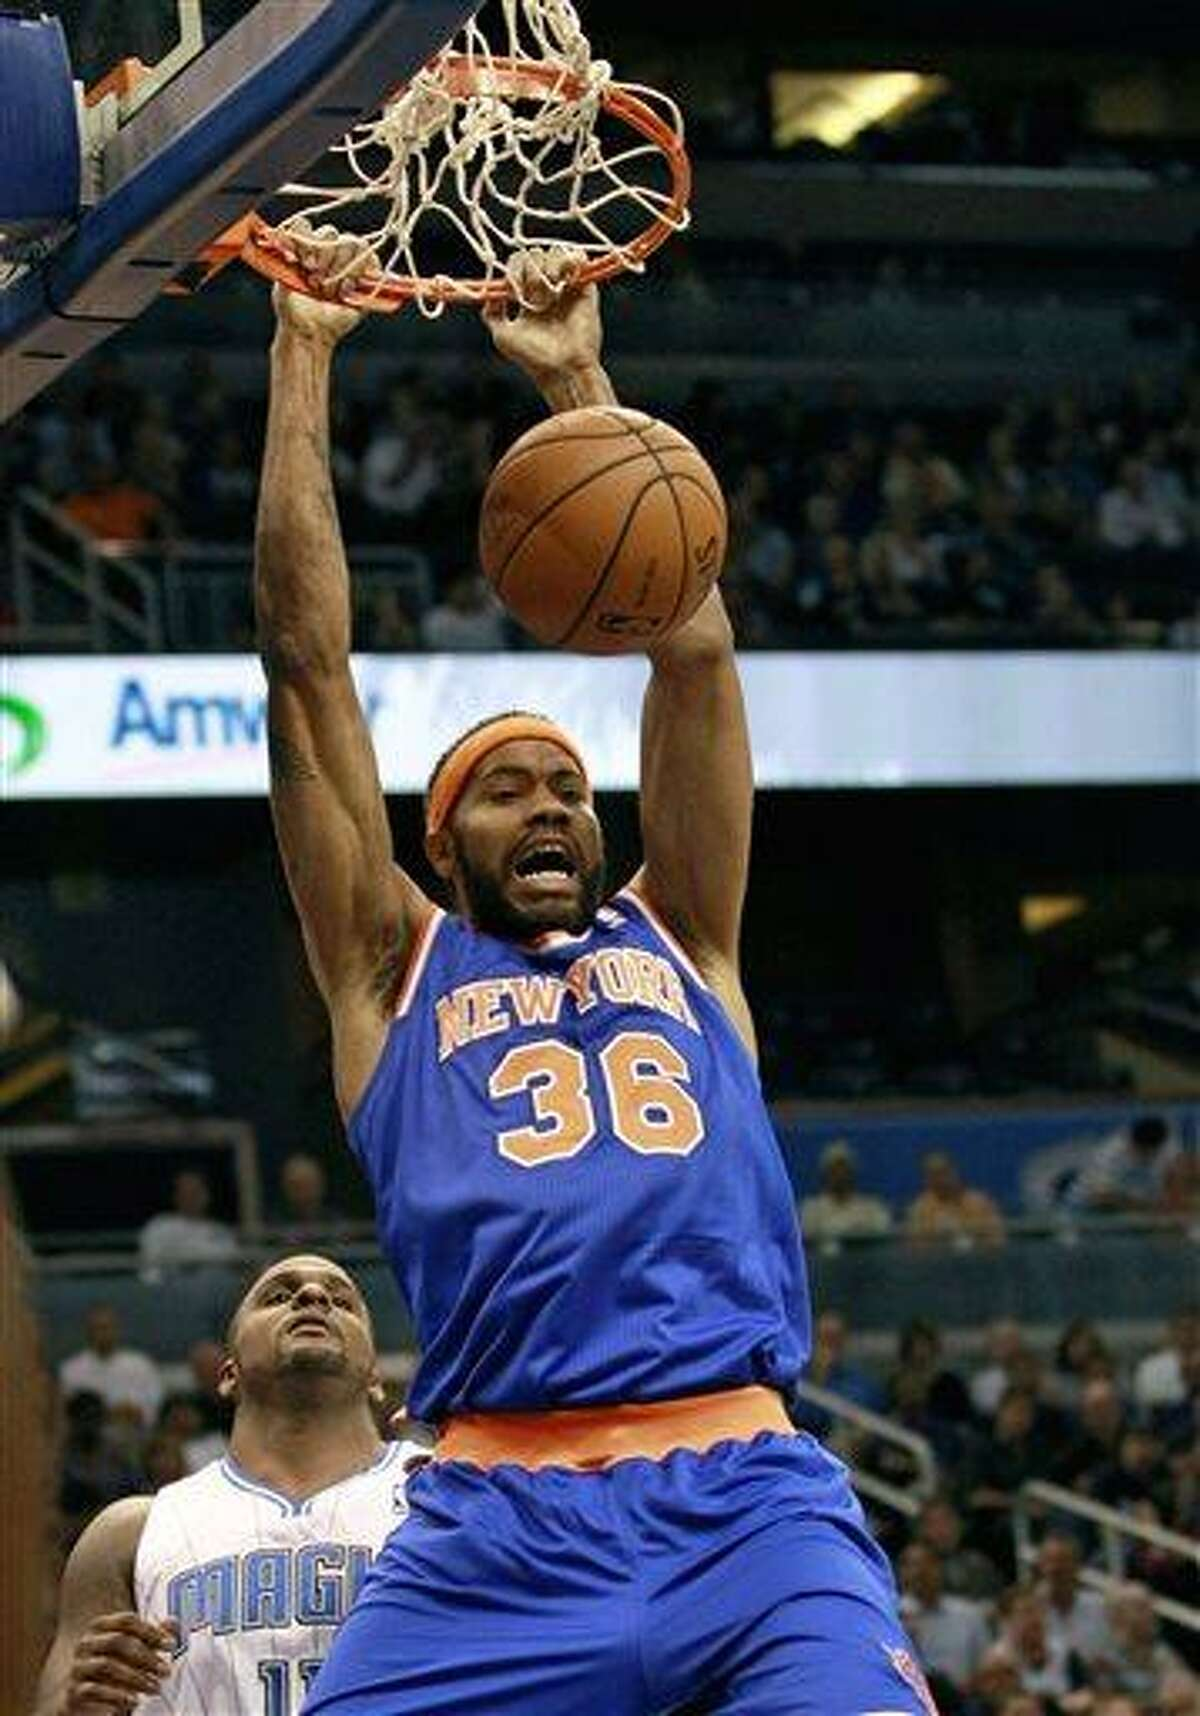 FILE - In this Nov. 13, 2012 file photo, New York Knicks' Rasheed Wallace (36) dunks the ball in front of Orlando Magic's Glen Davis, left, during the first half of an NBA basketball game in Orlando, Fla. Wallace has retired again from the NBA after he was unable to recover from a left foot injury. The Knicks say in a statement that because of his injury Wallace